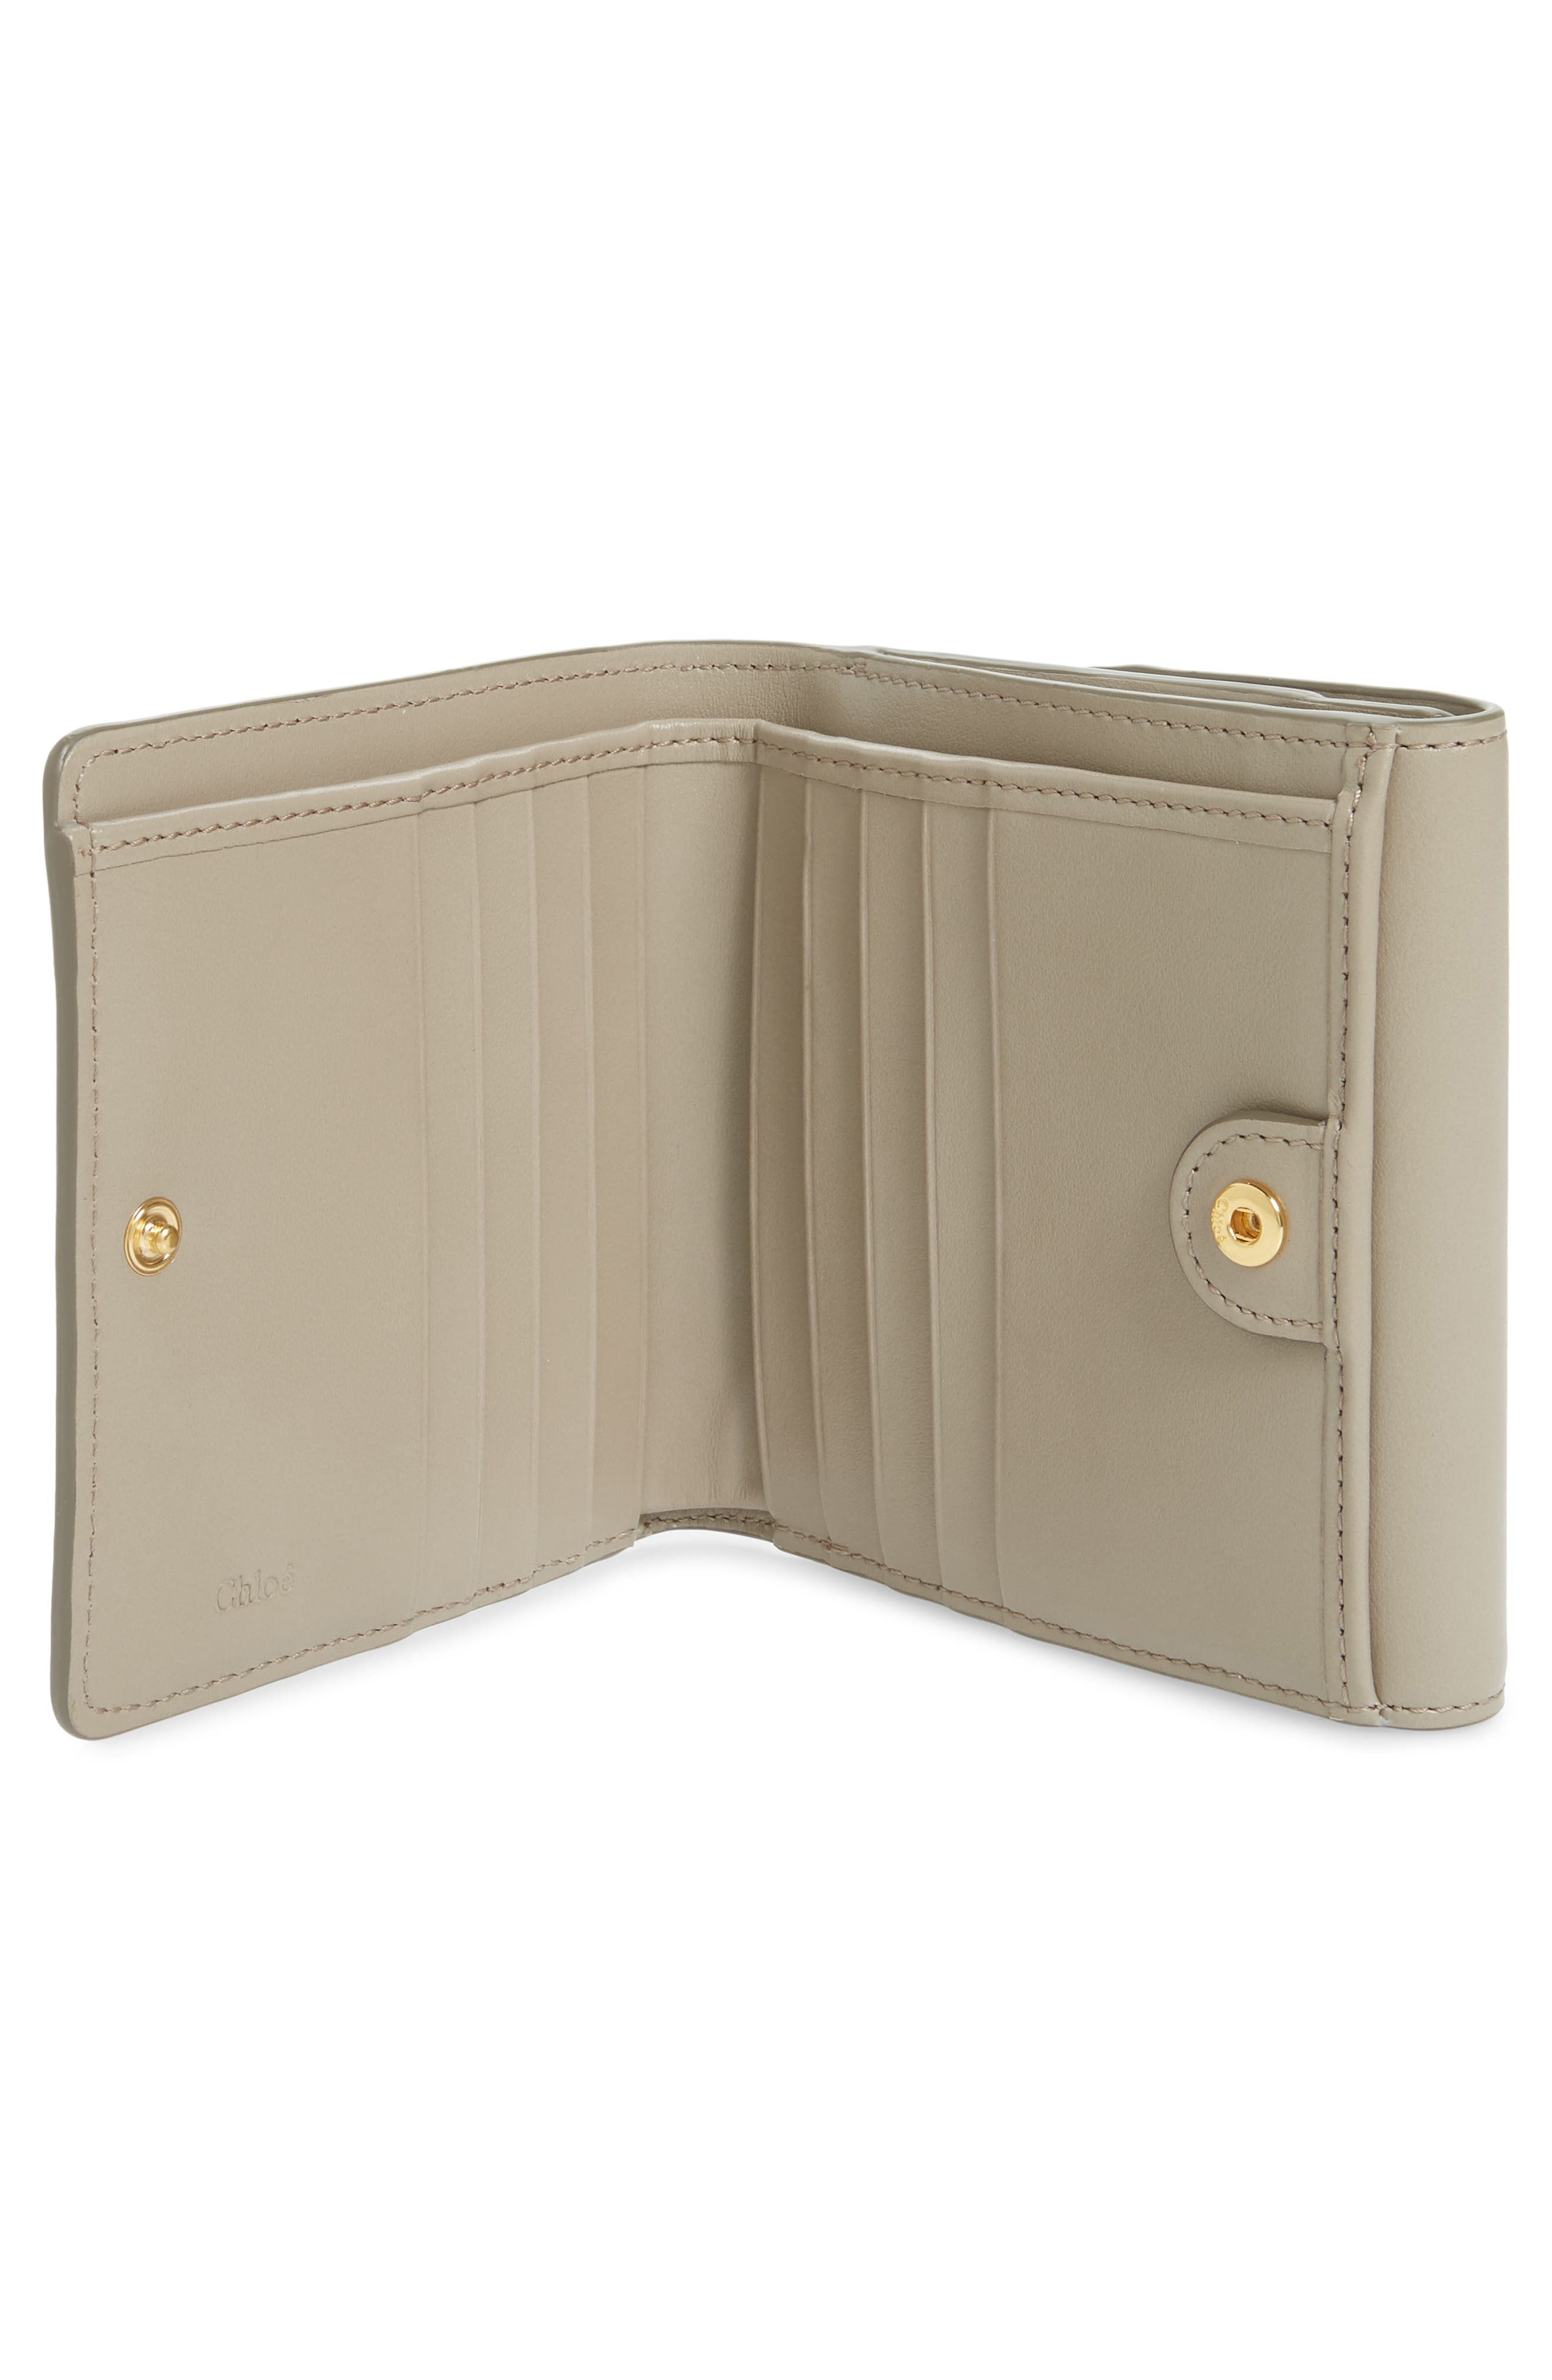 CHLOÉ, Square Leather Wallet, Alternate thumbnail 2, color, MOTTY GREY